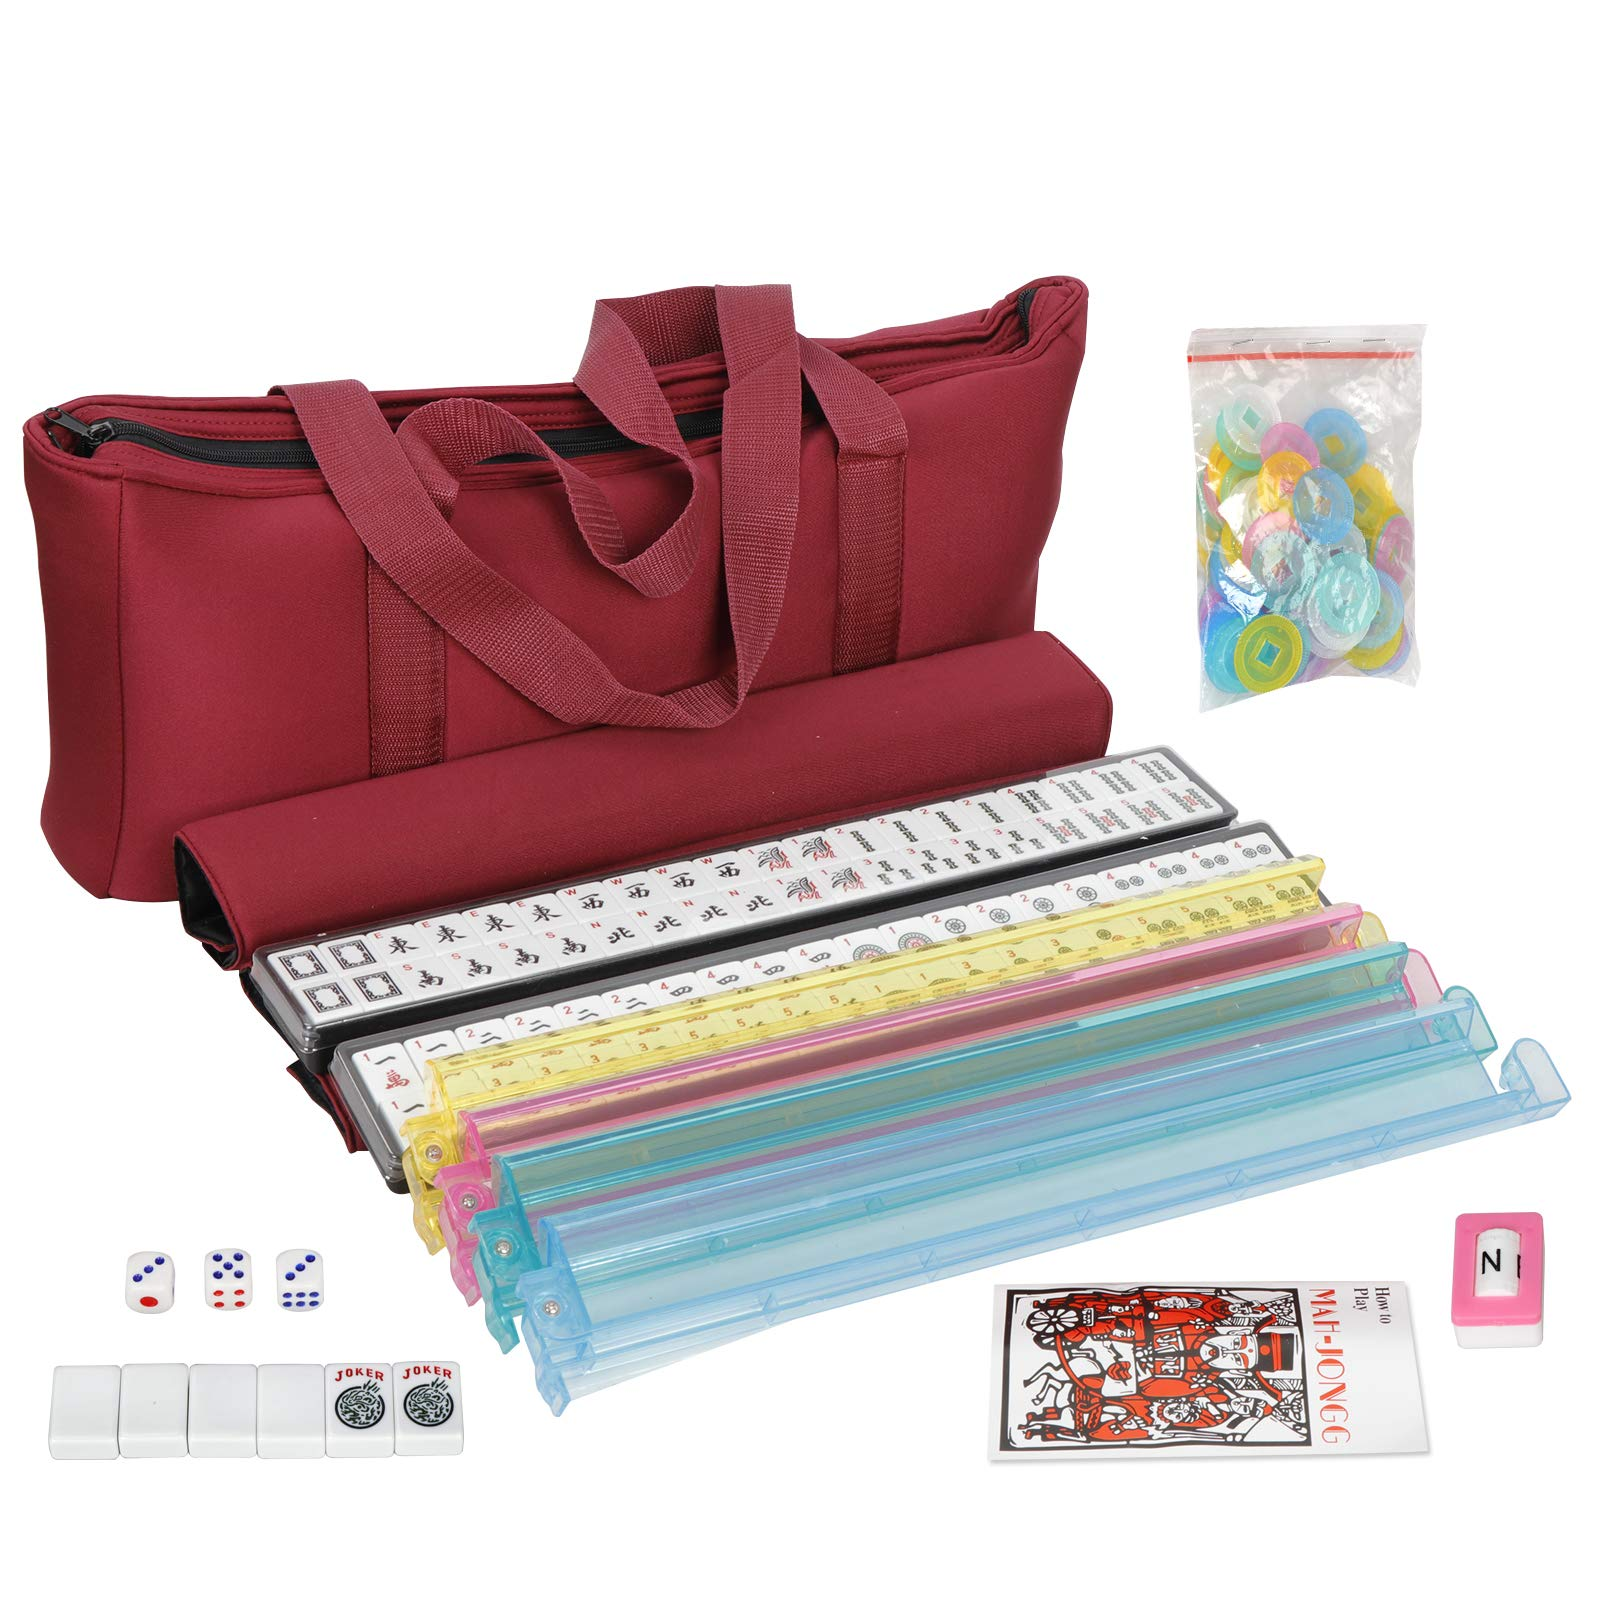 American Mah Jongg Mahjong 166 Tile Set with 4 All-in-One Rack/Pushers,Soft Bag (Stylish Full Size Complete Mah Jongg Set) by Nova Microdermabrasion